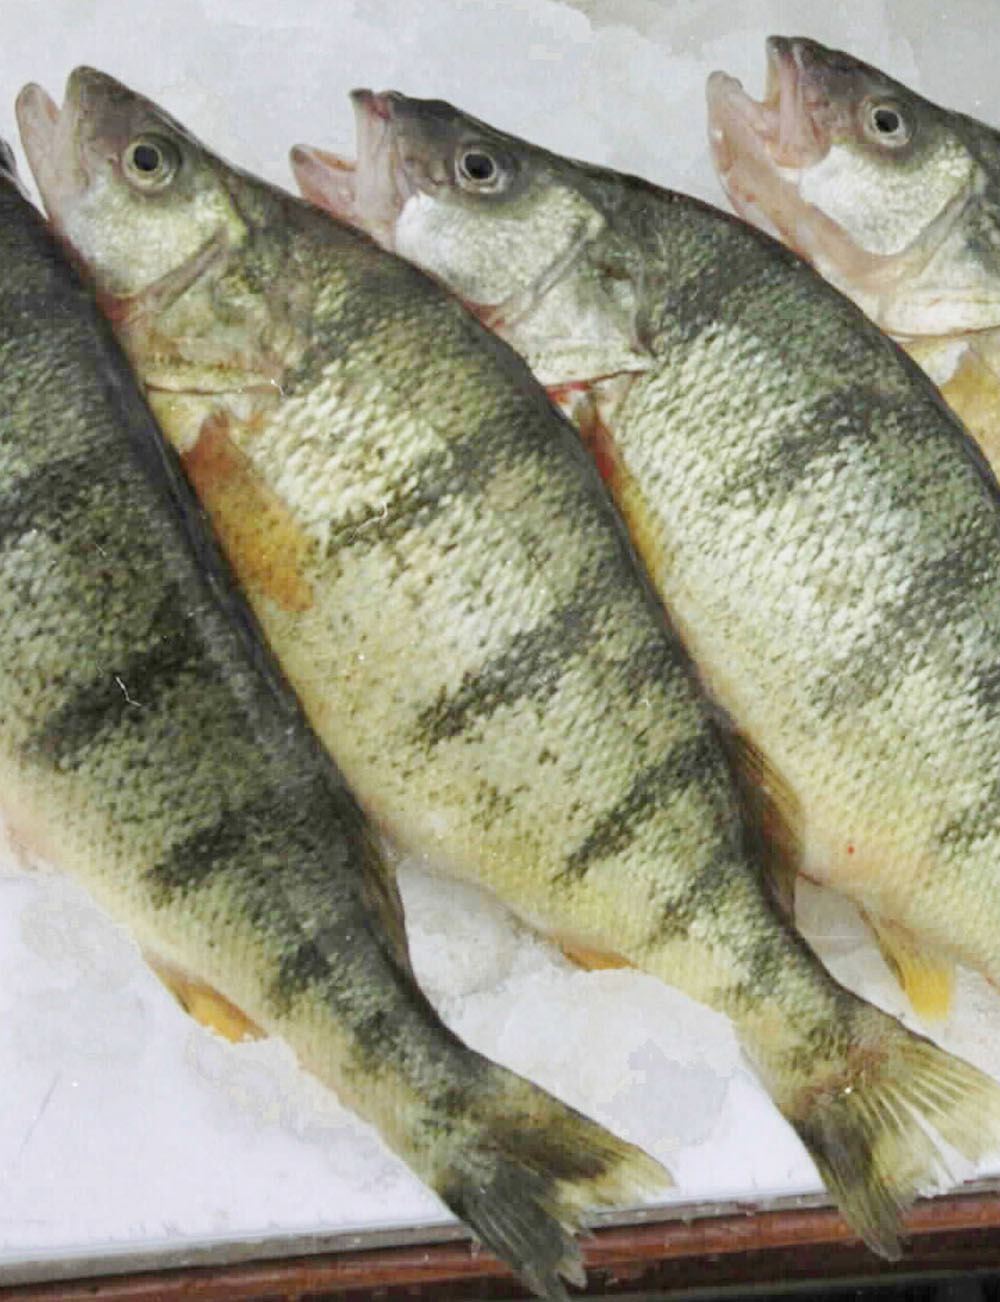 Lack of Lake Erie yellow perch a disappointment